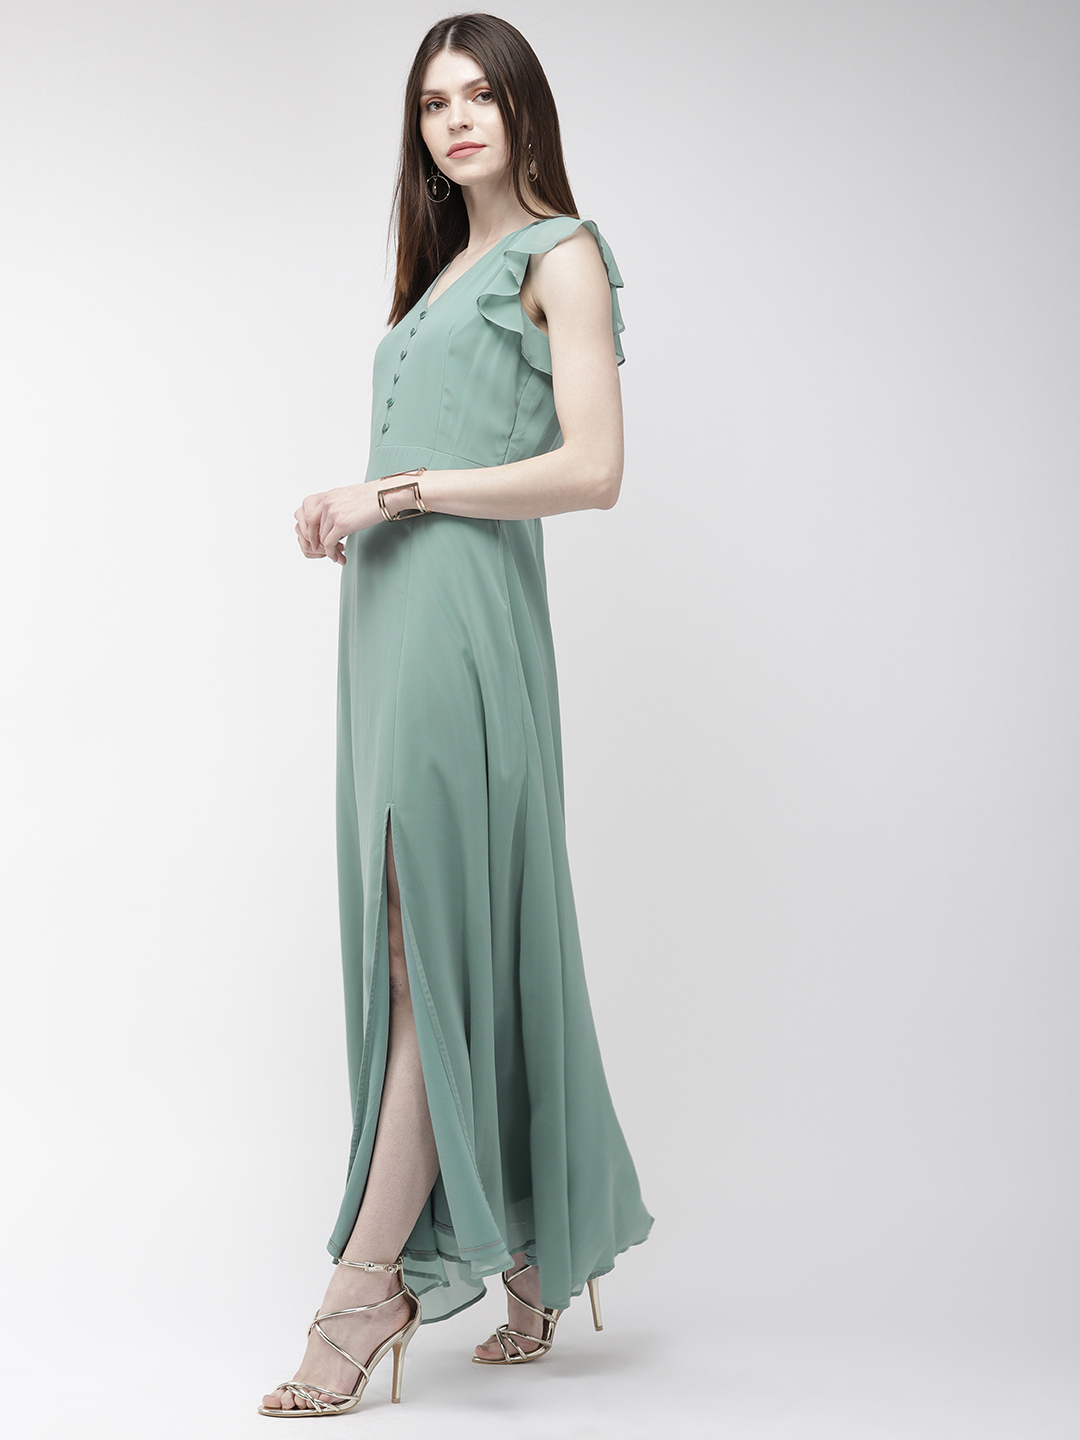 Dresses-The New Flair Maxi Dress2